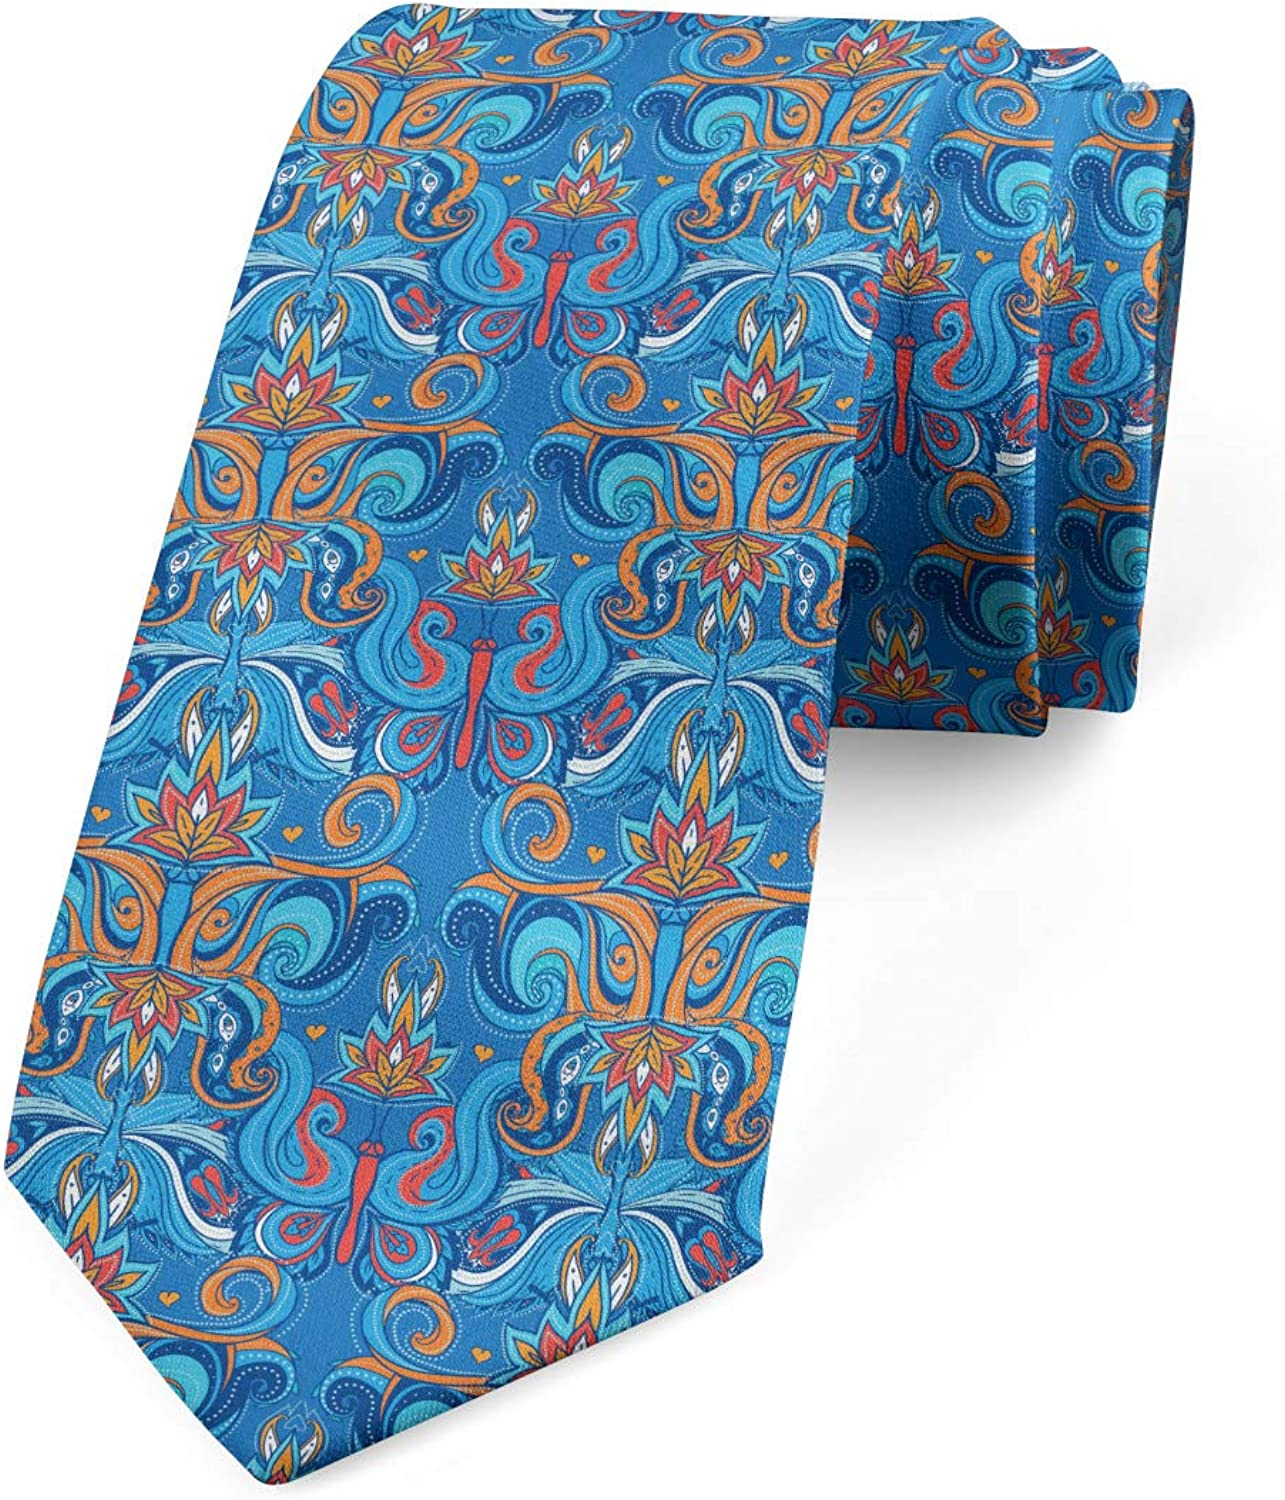 Ambesonne Men's Tie, Abstract Floral Ornaments, Necktie, 3.7